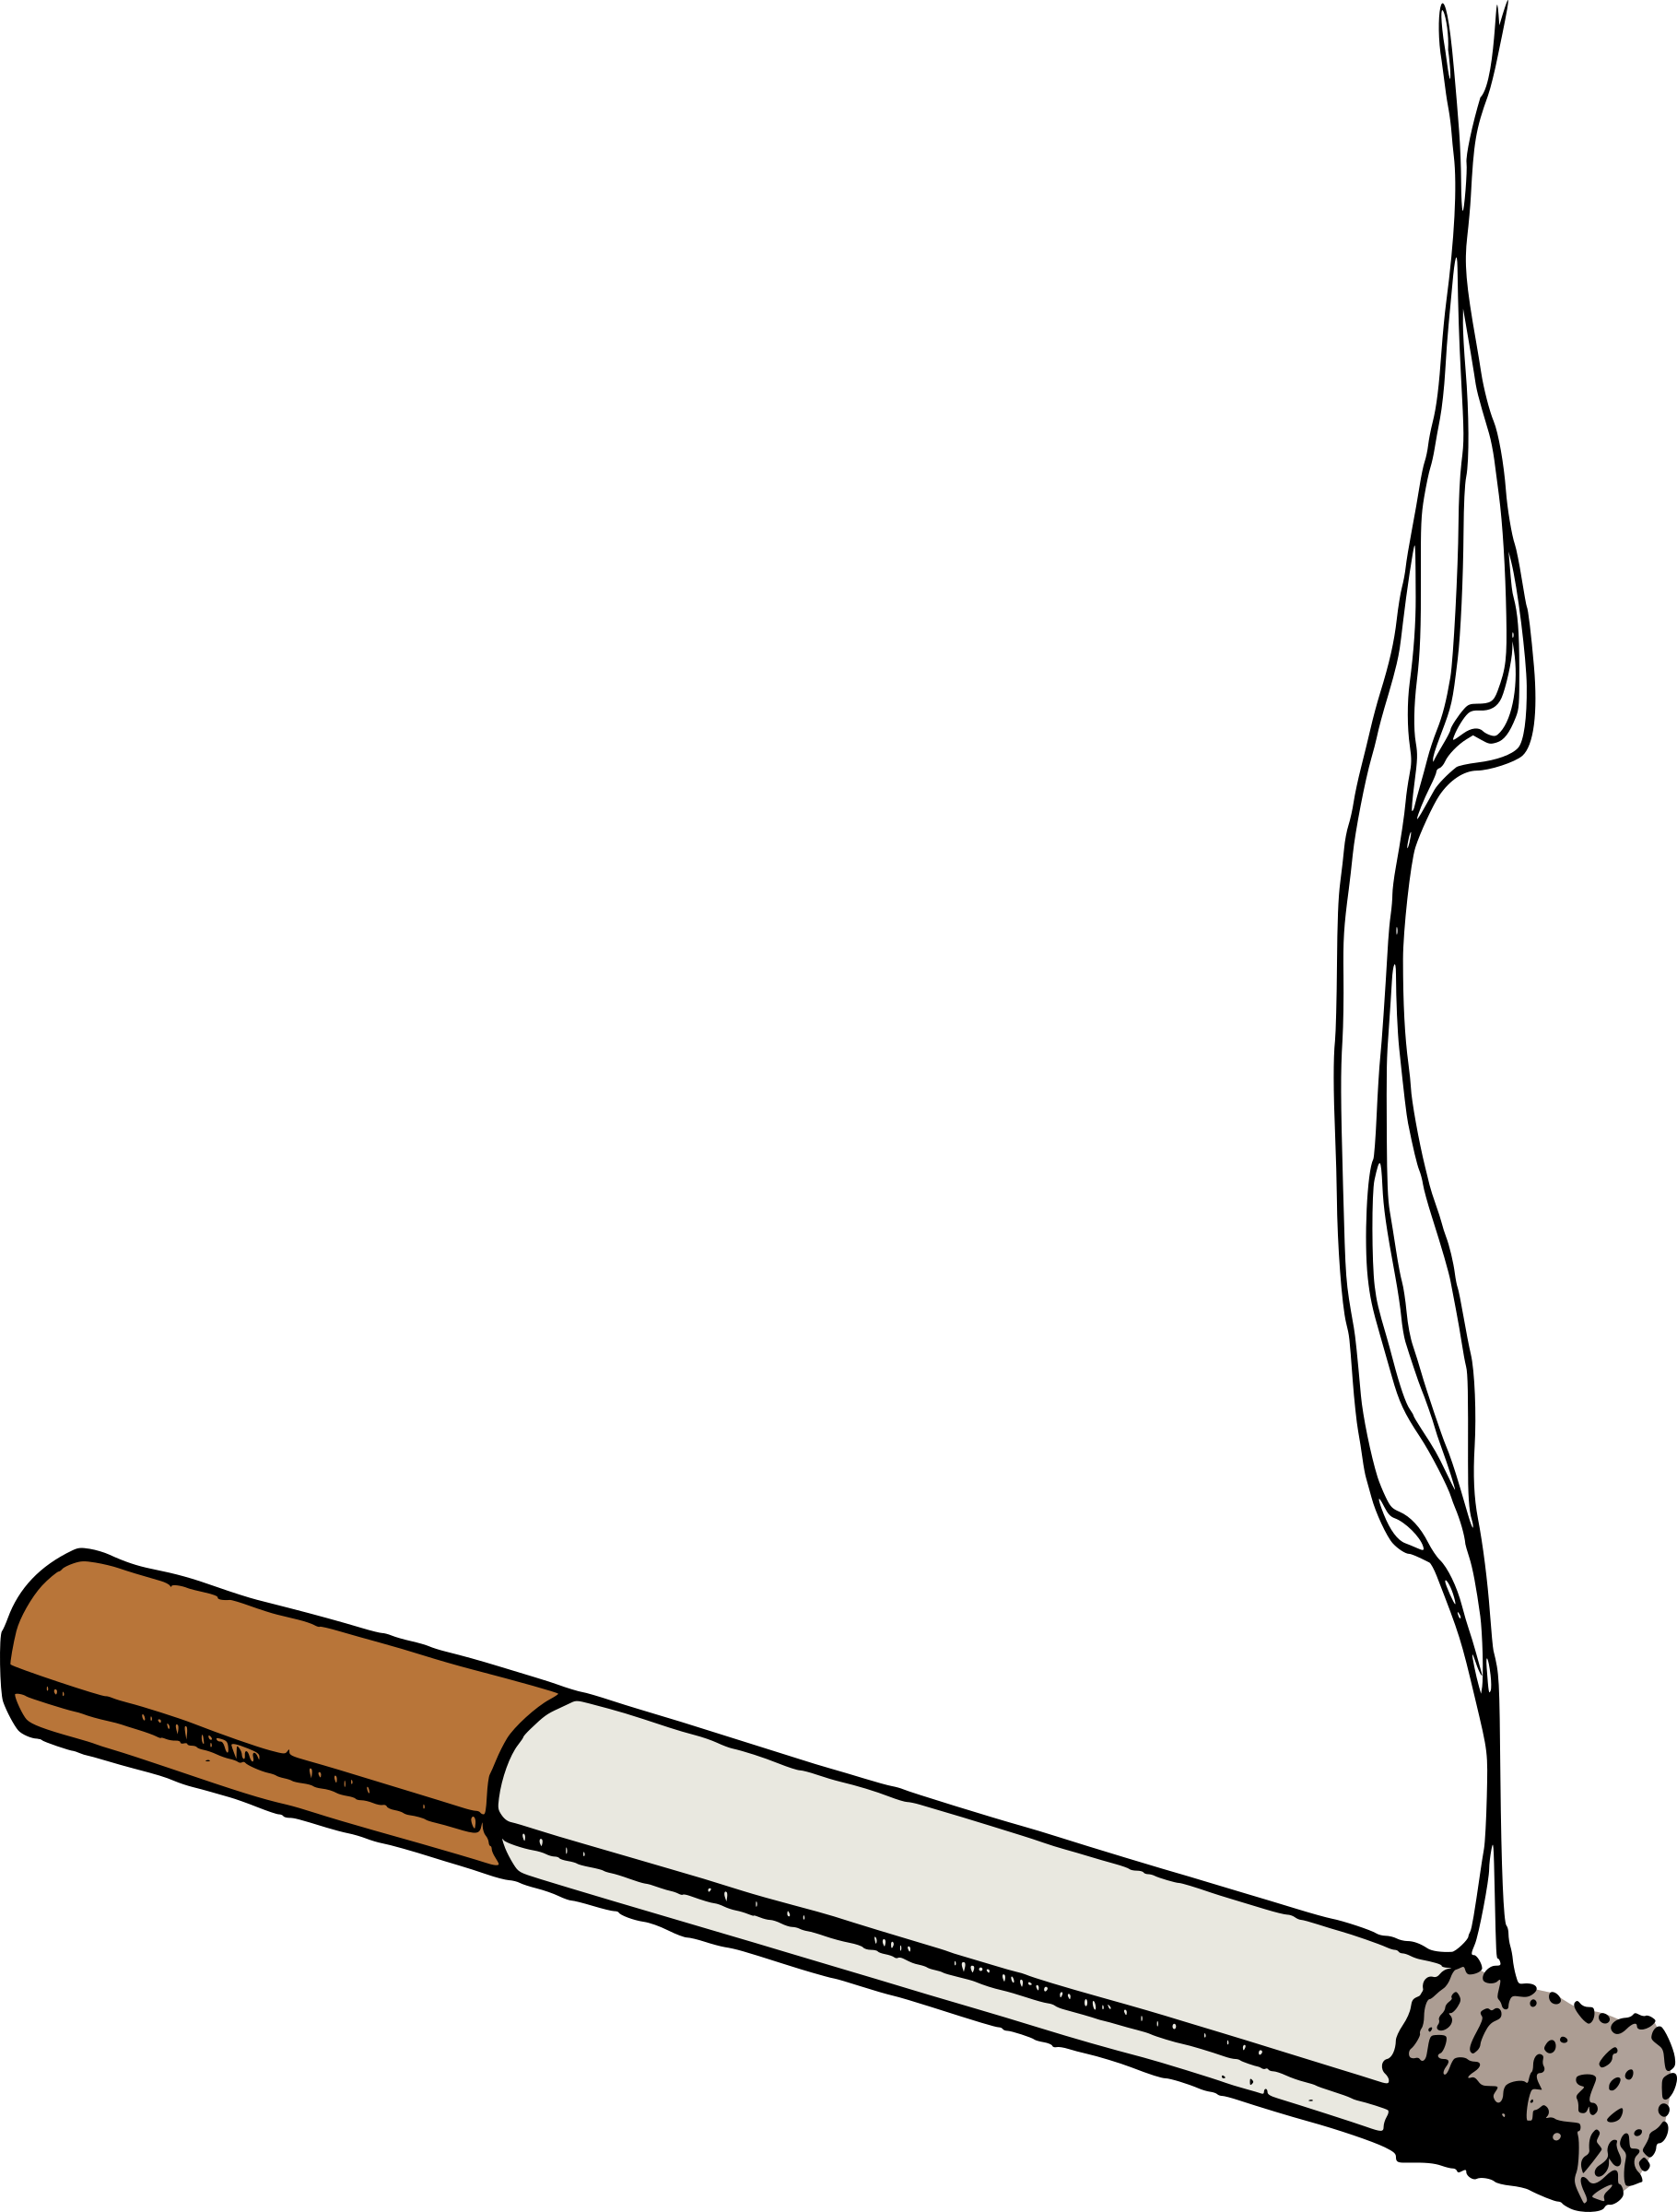 picture royalty free library Colour big image png. Cigarette clipart.